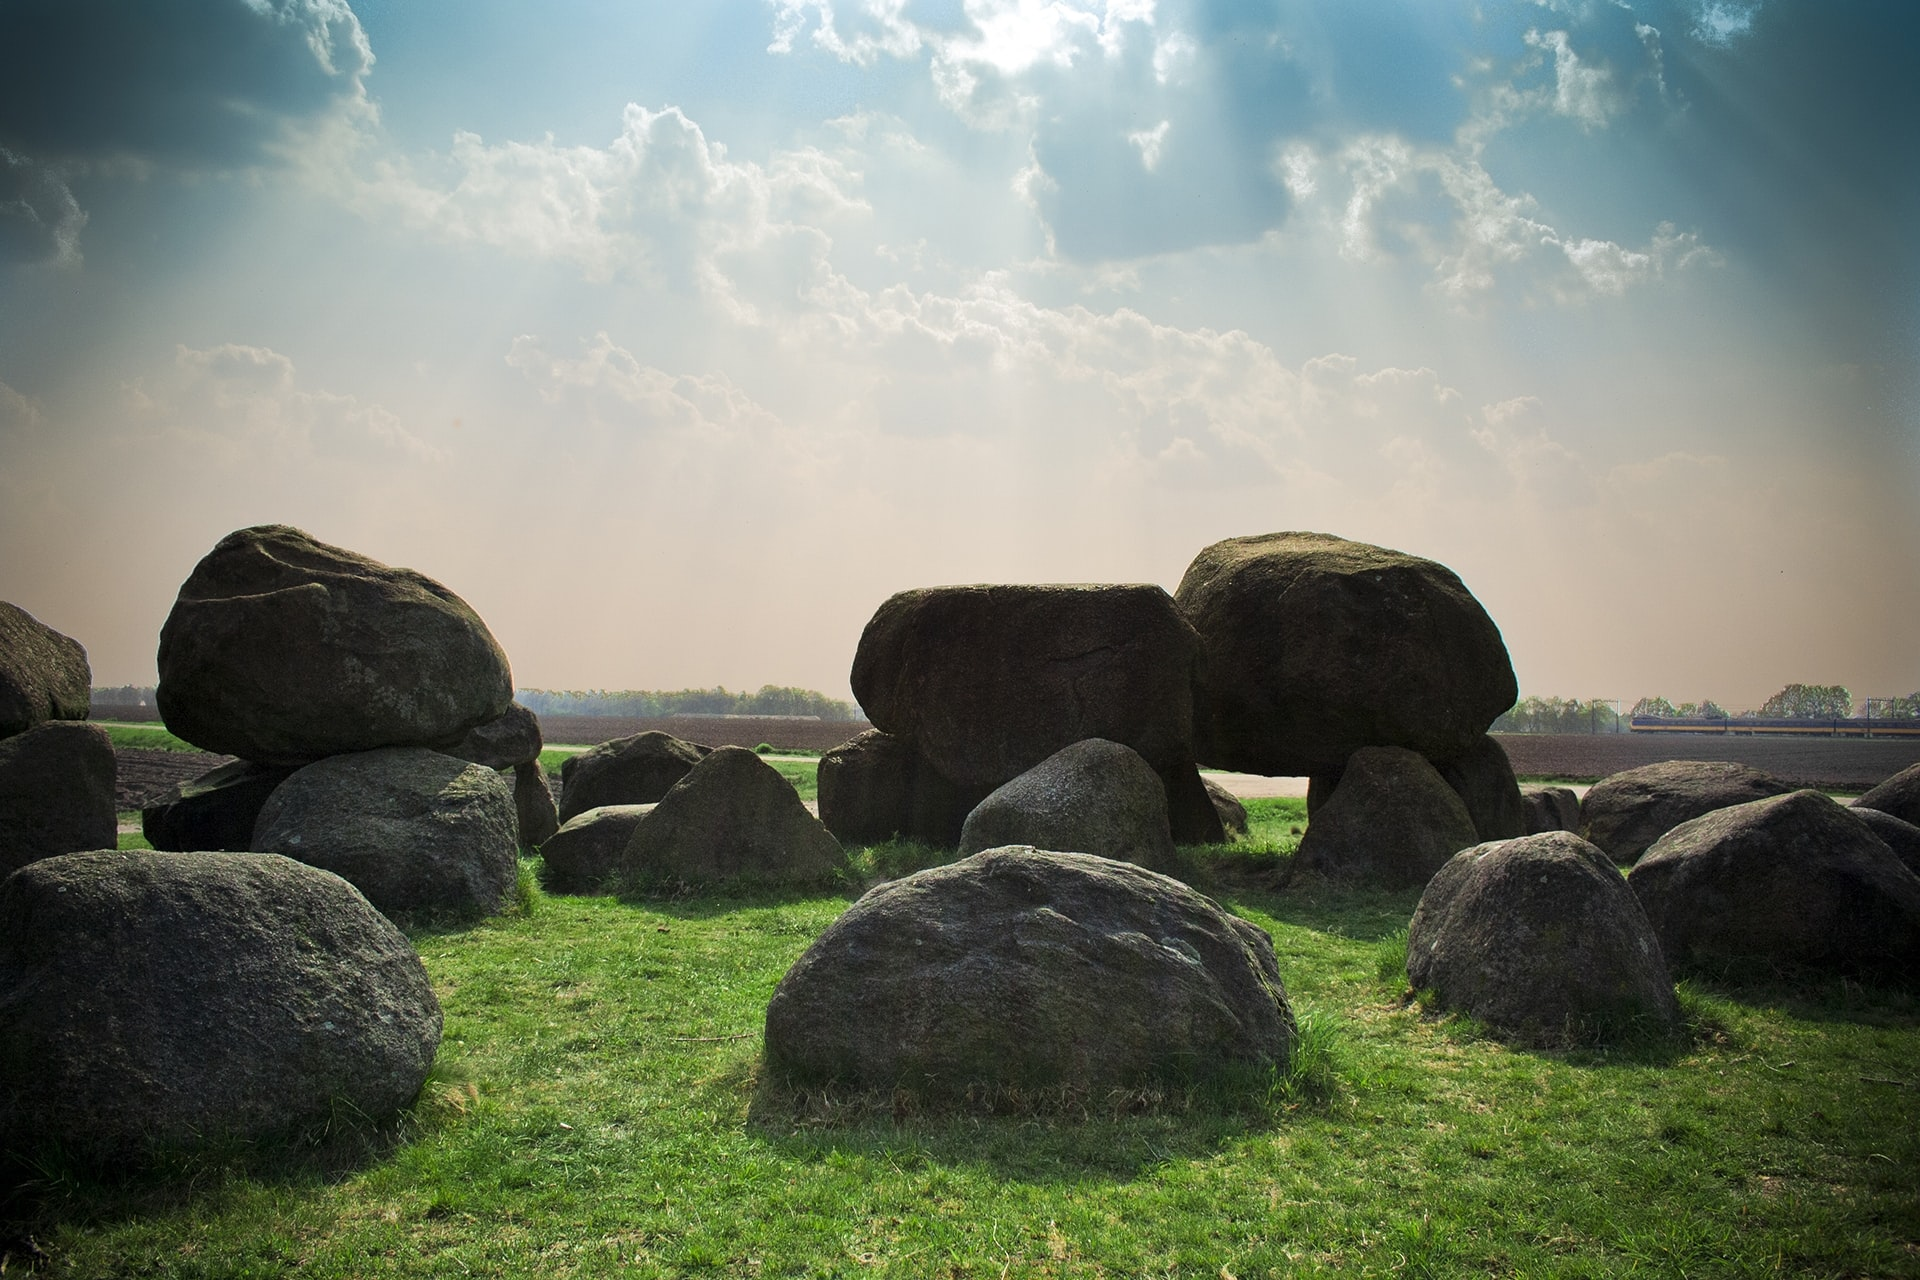 stone formation at the green grass field